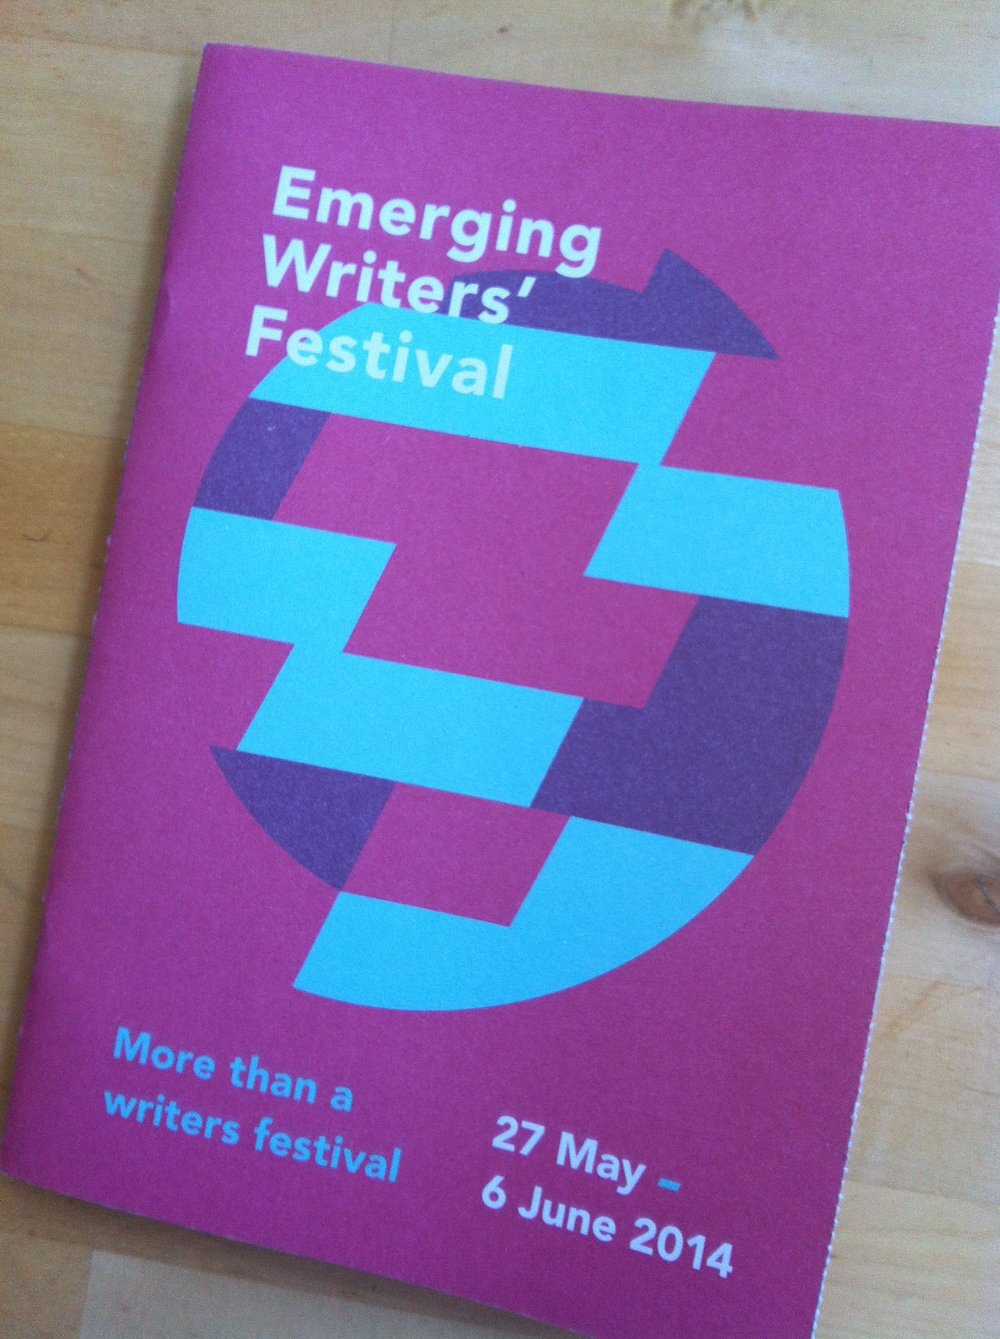 Get your hands on one of these - an Emerging Writers' Festival program.